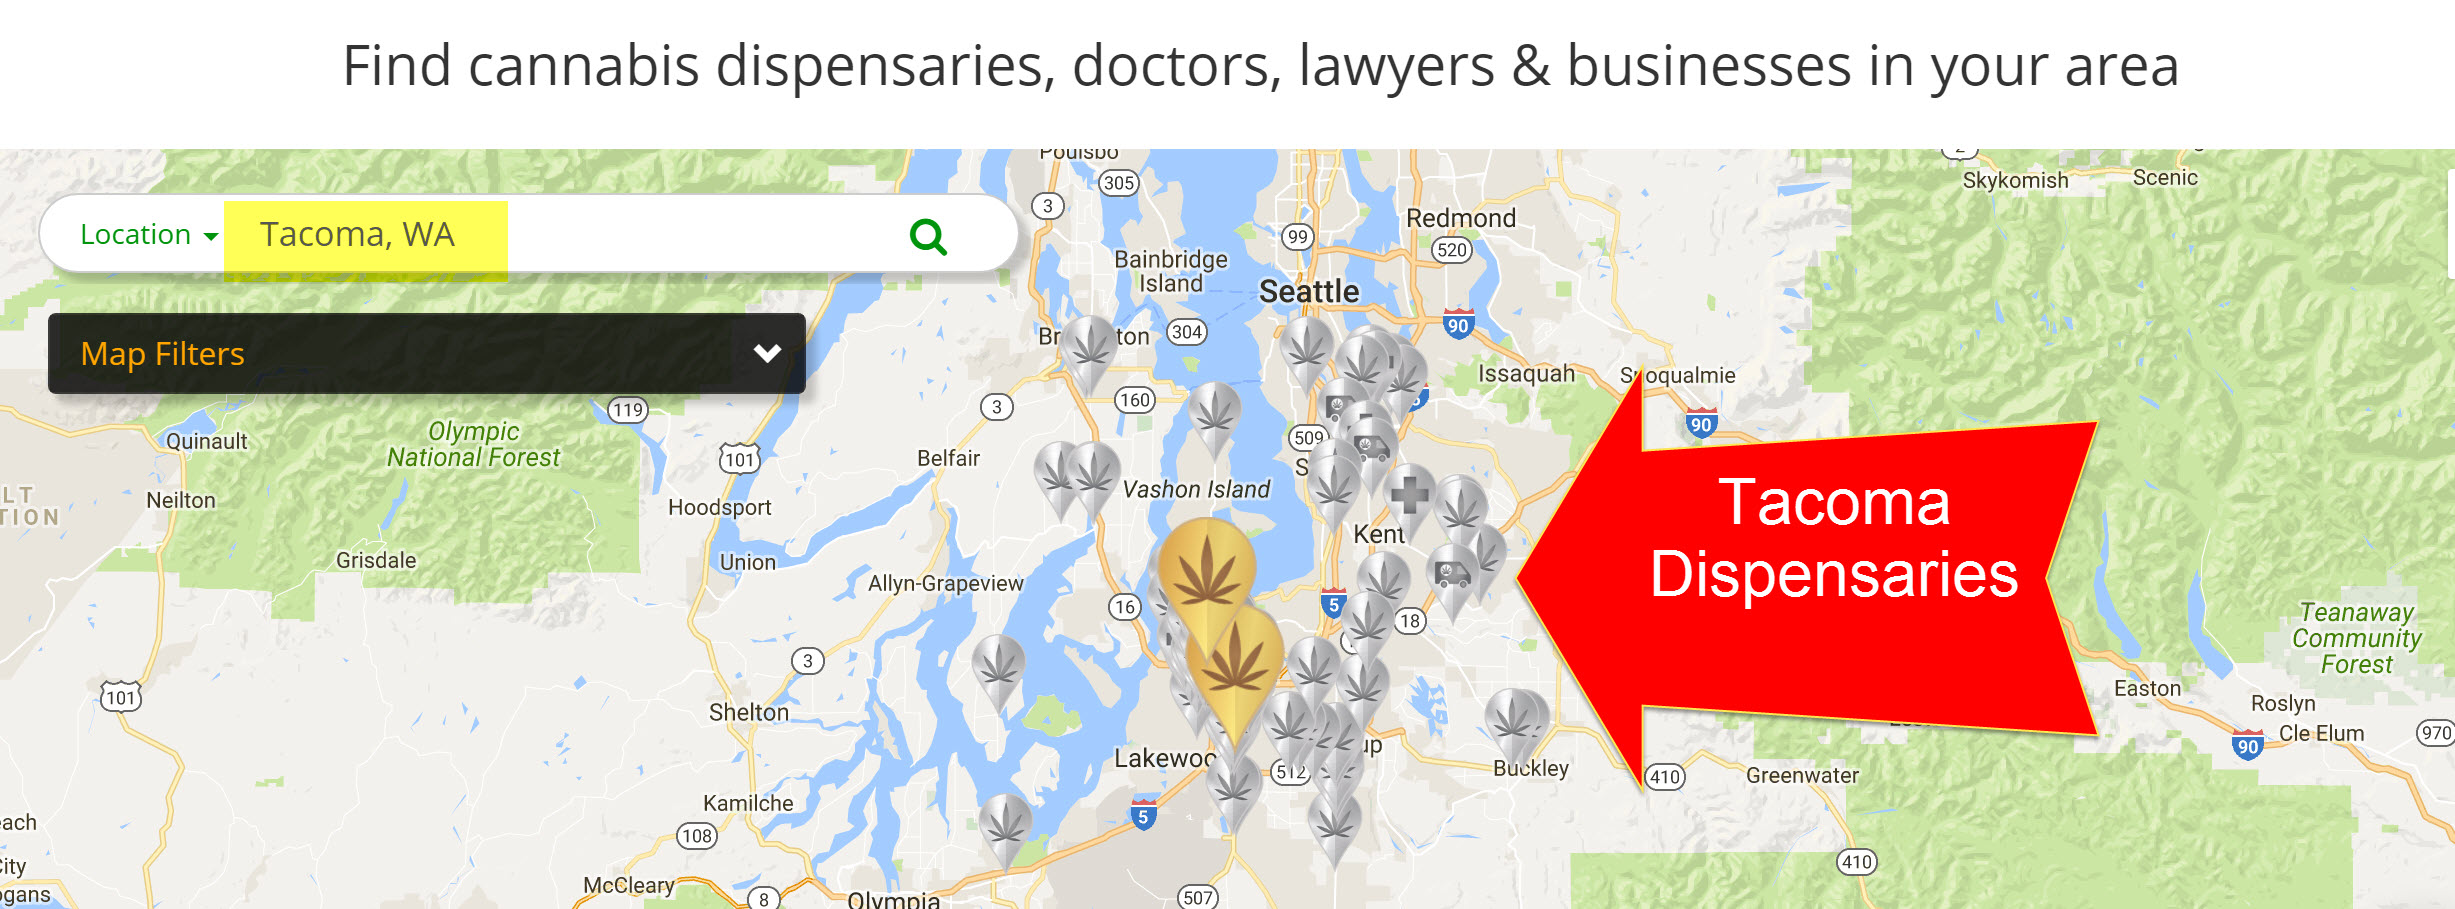 Tacoma Dispensaries Offer Great Marijuana With Great People